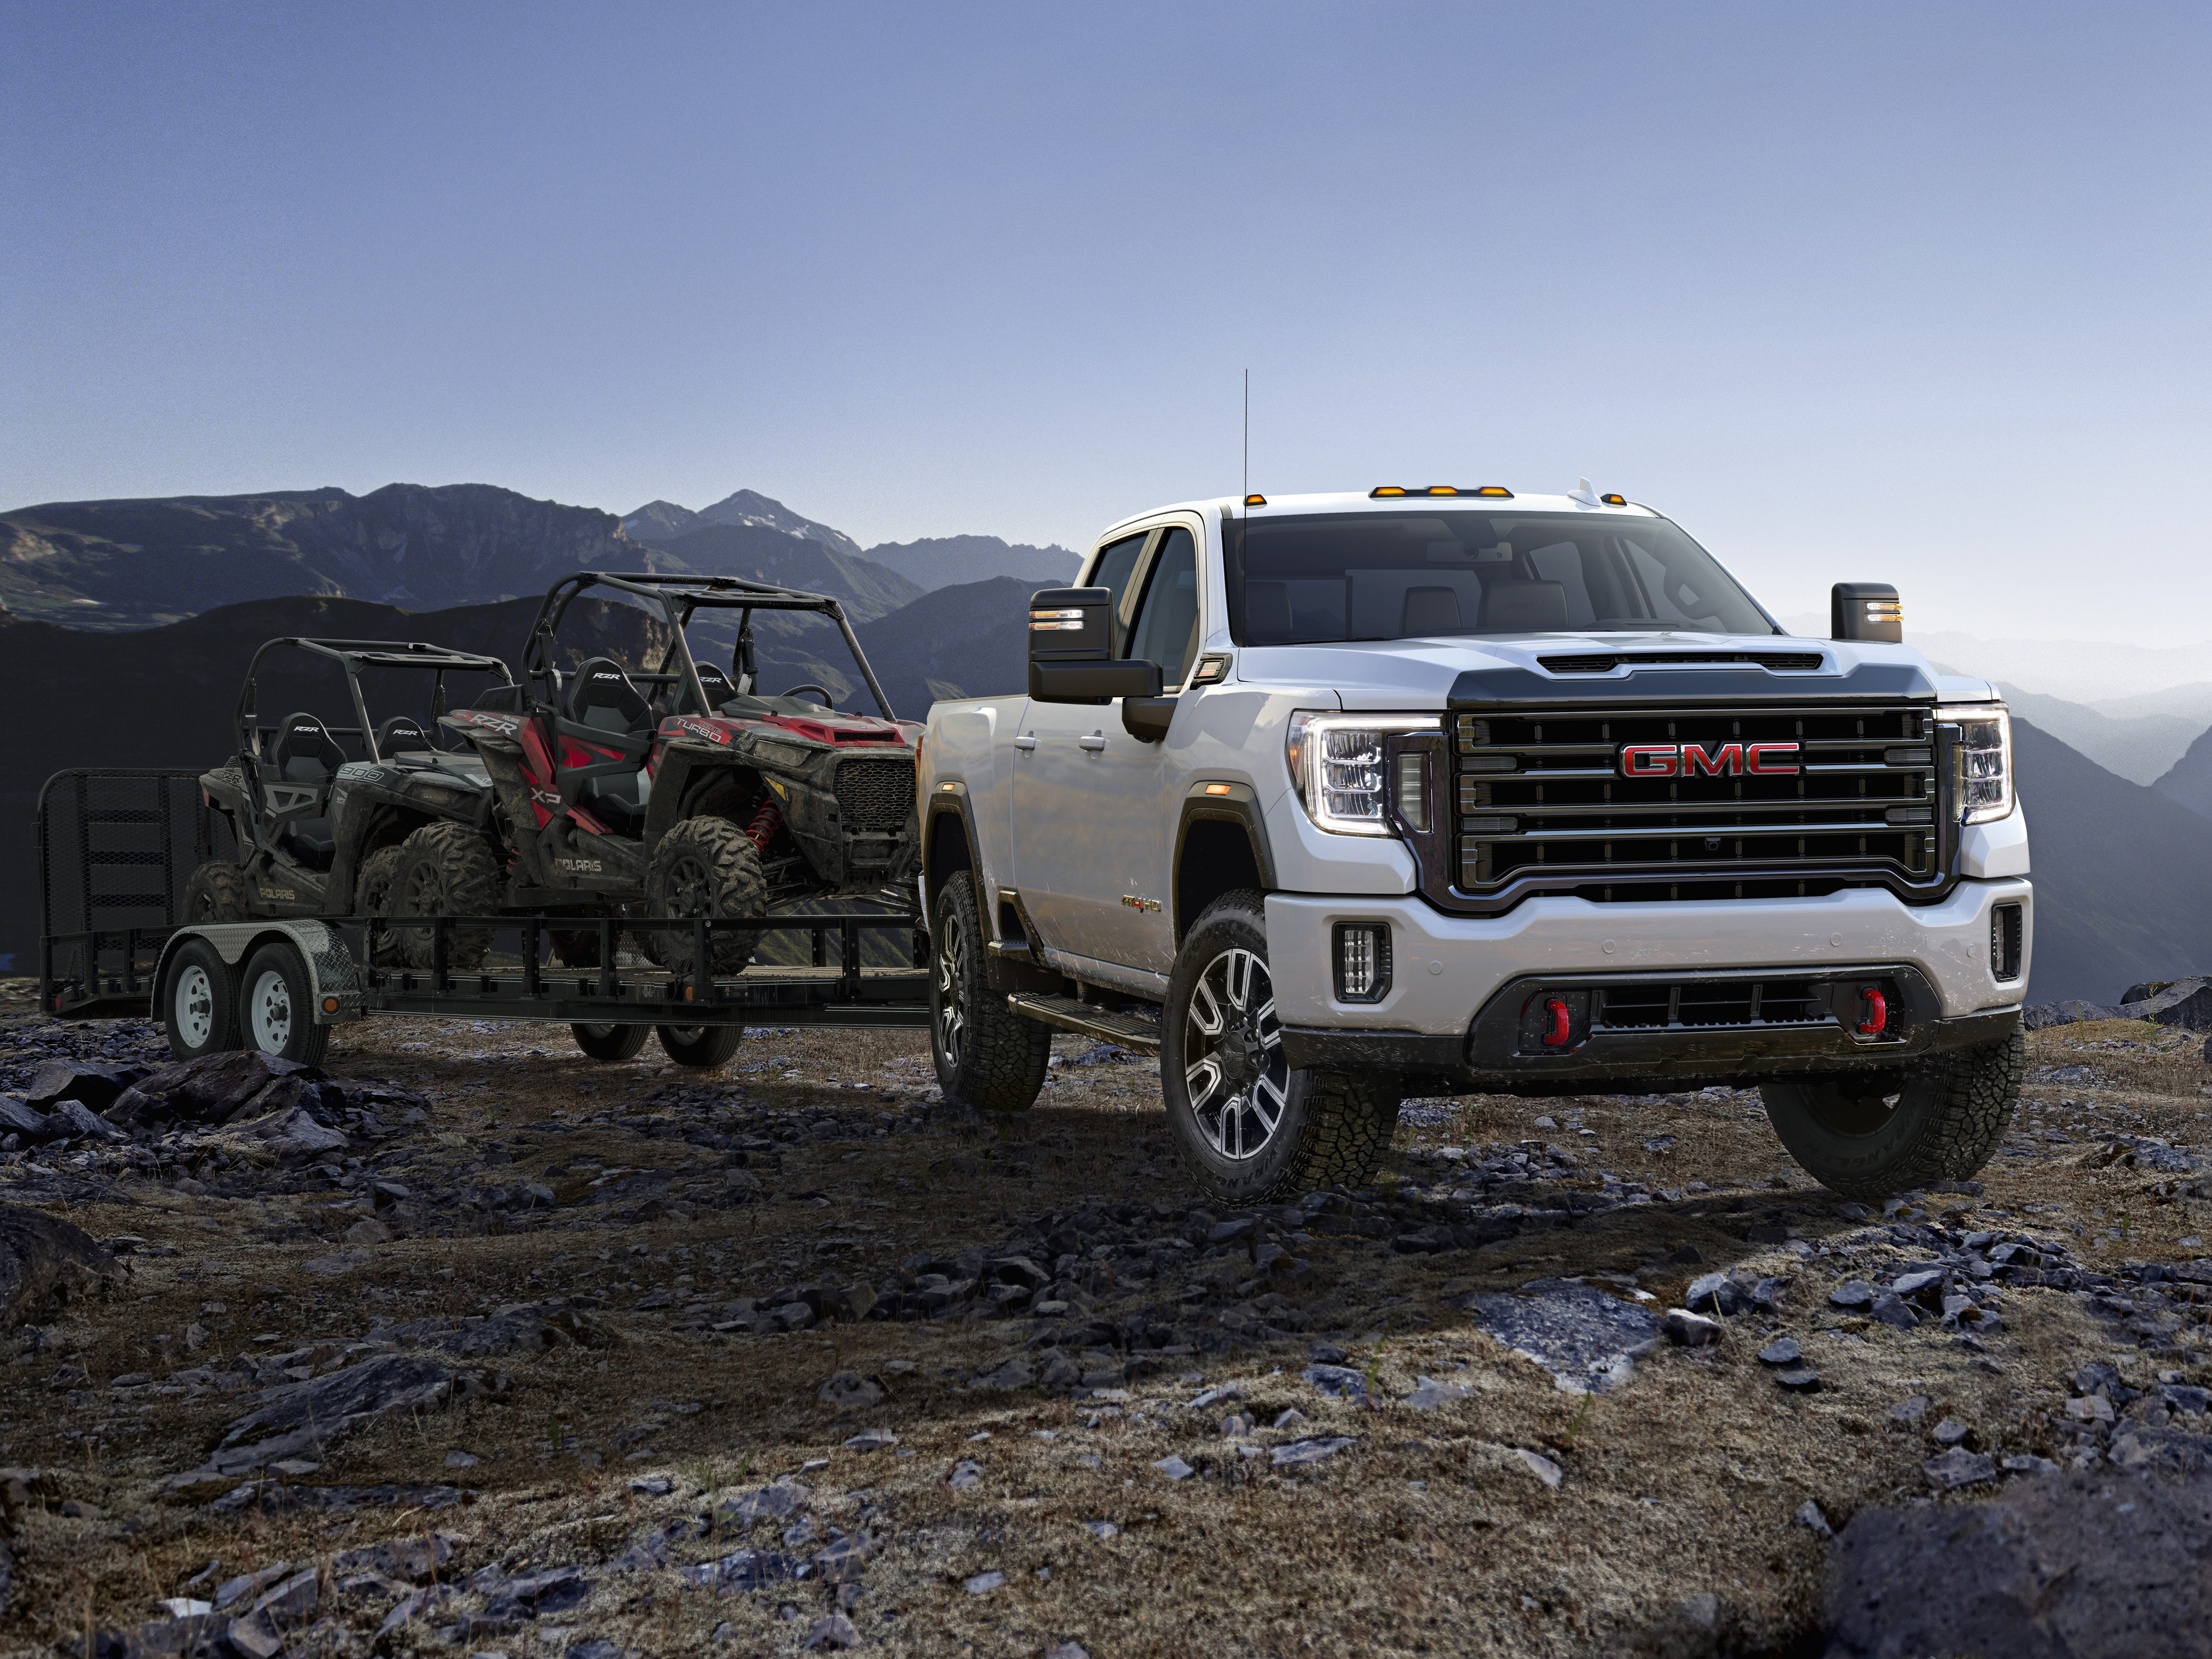 2020 GMC Sierra 2500 HD AT4 combines greater trailering capability with technologies designed to provide customers with a world-class towing experience.